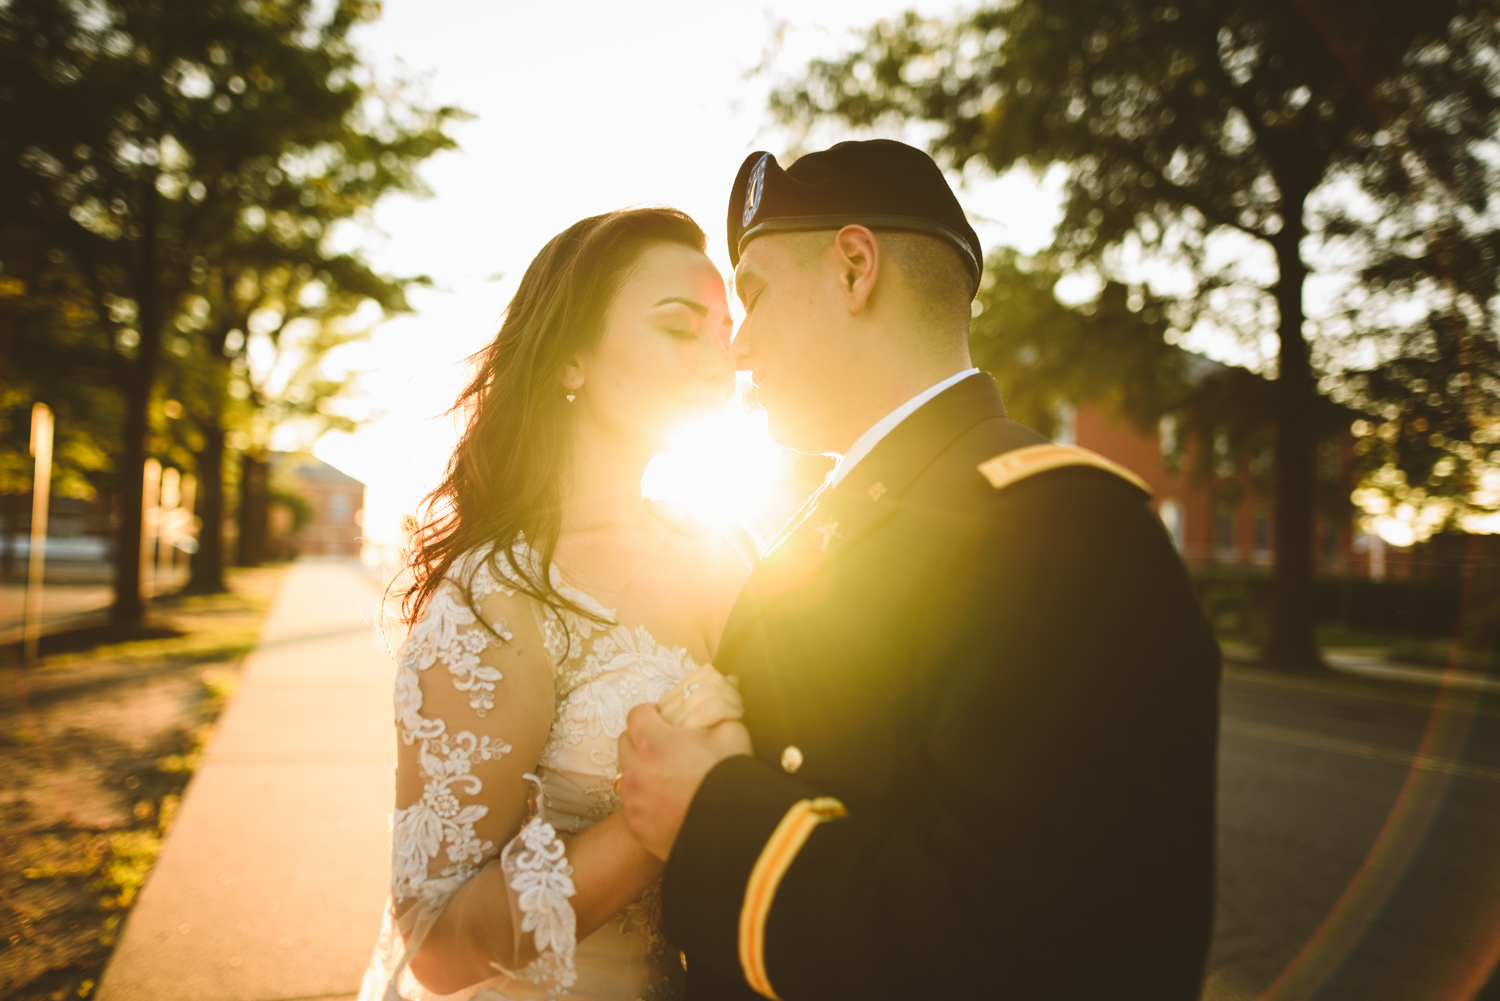 024 wedding portrait with lens flare.jpg